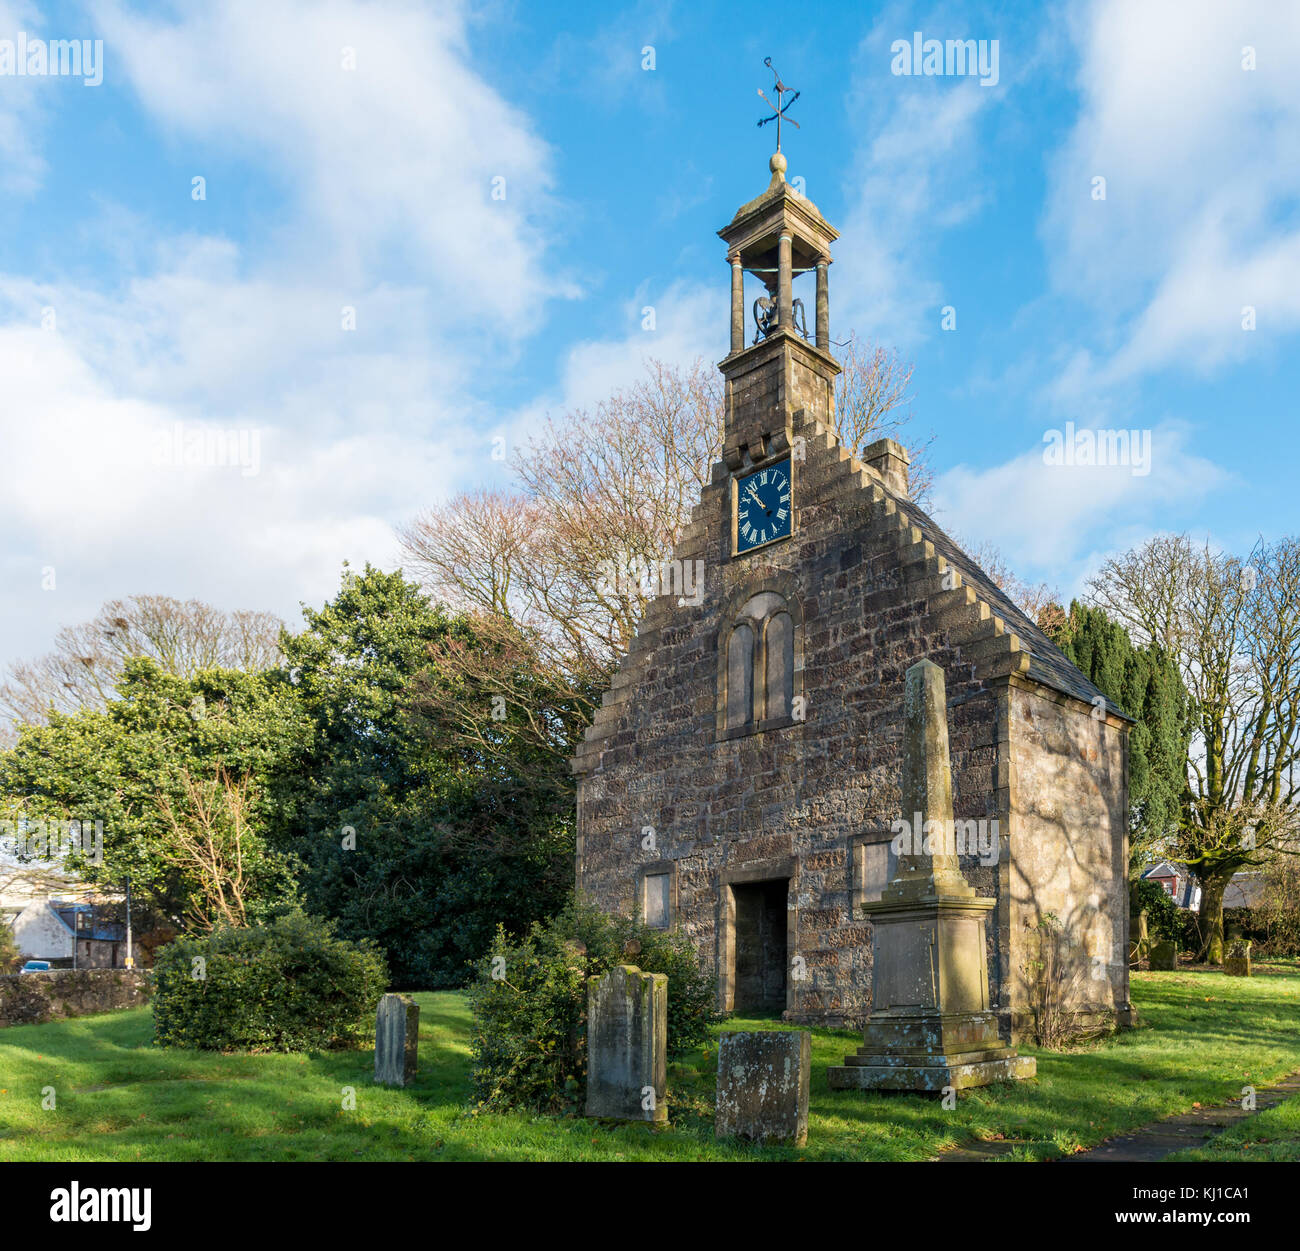 Lochwinnoch,Scotland,UK-November 18,2017: The early 18th-century St John's Church, also known as 'Auld Simon' - Stock Image